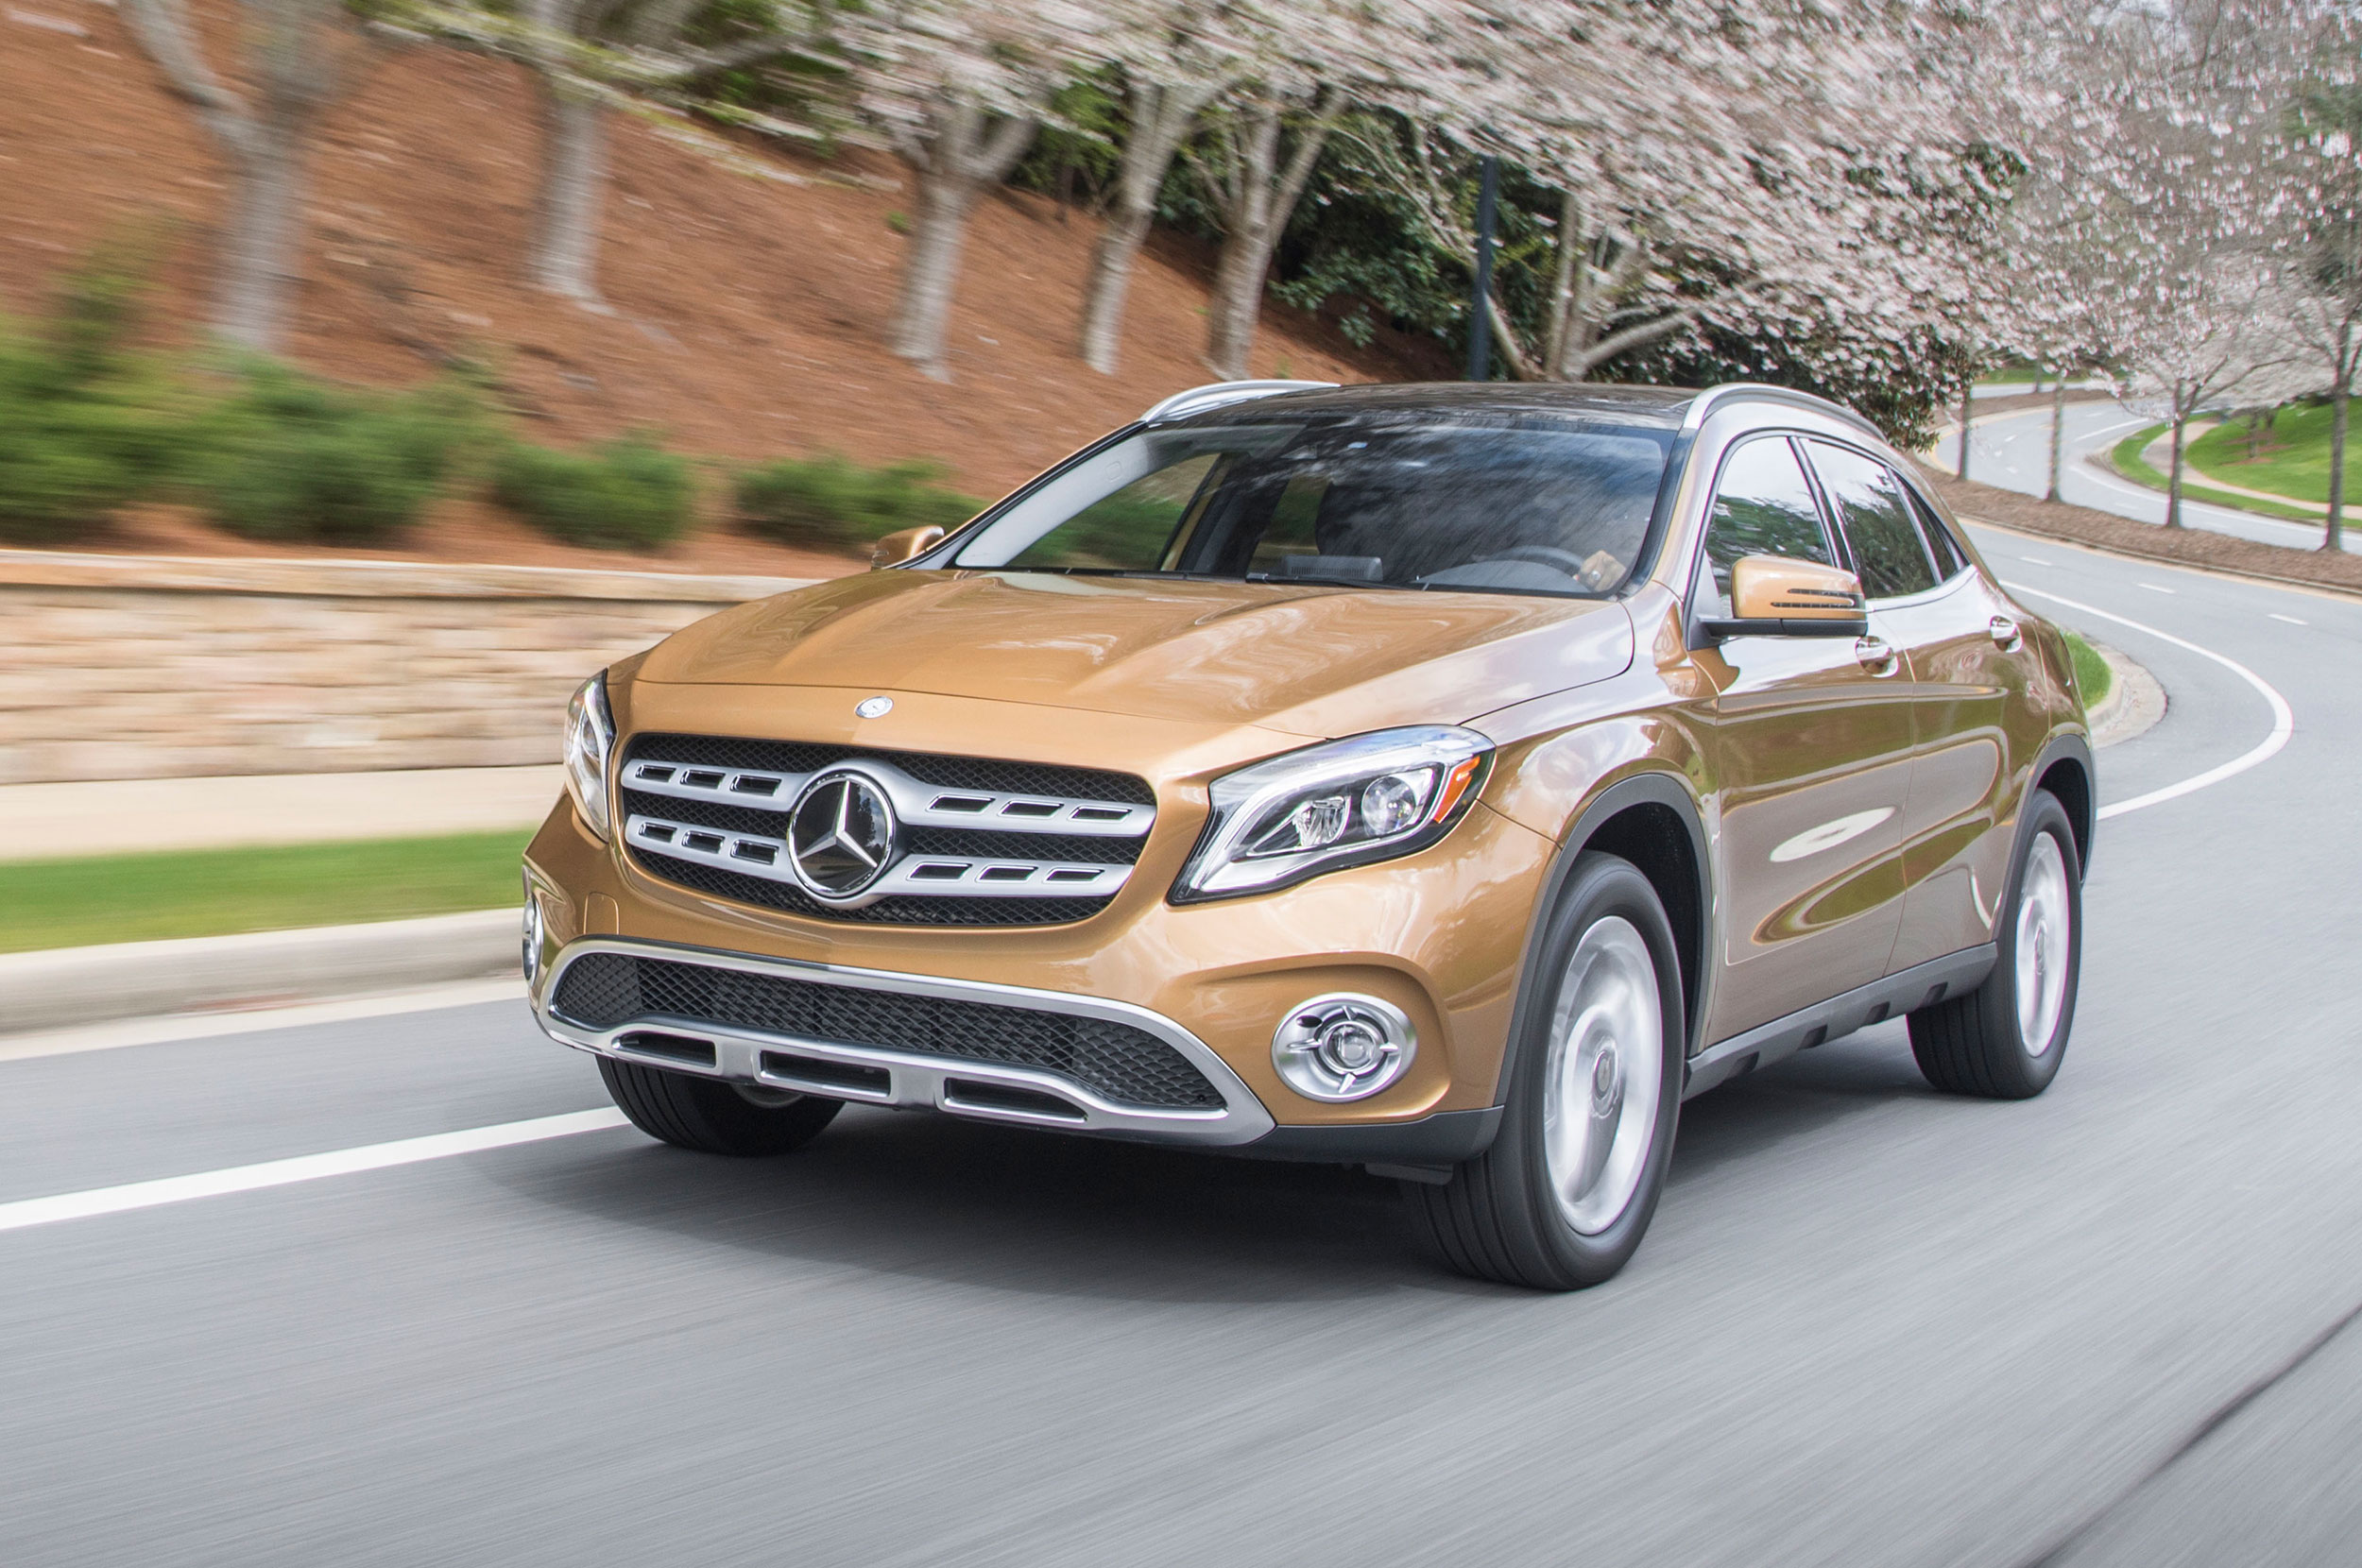 2019 mercedes benz gla class amg gla45 4matic overview. Black Bedroom Furniture Sets. Home Design Ideas